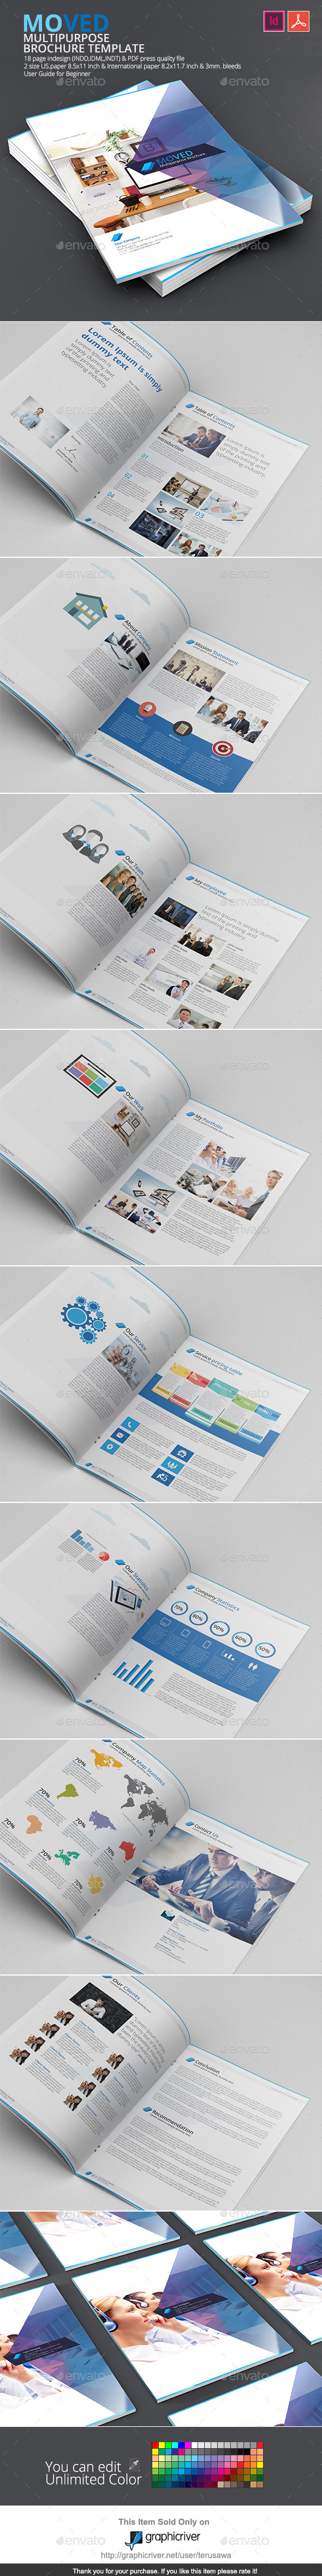 Moved Brochure Template - Corporate Brochures